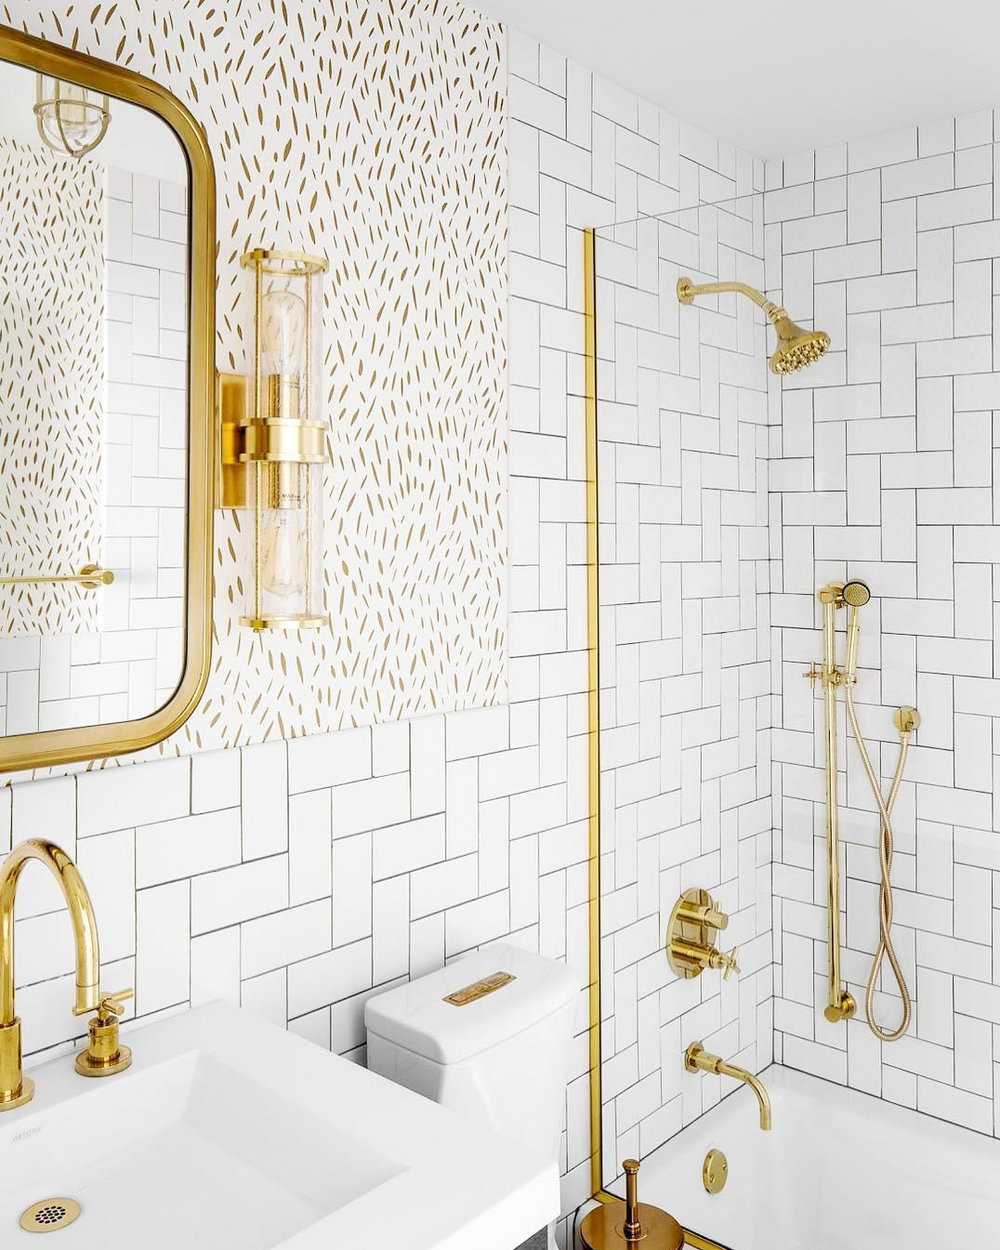 newport brass contemporary shower trim and widespread lav faucet with cross handles in polished gold - the ultimate guide to luxury plumbing by the delight of design